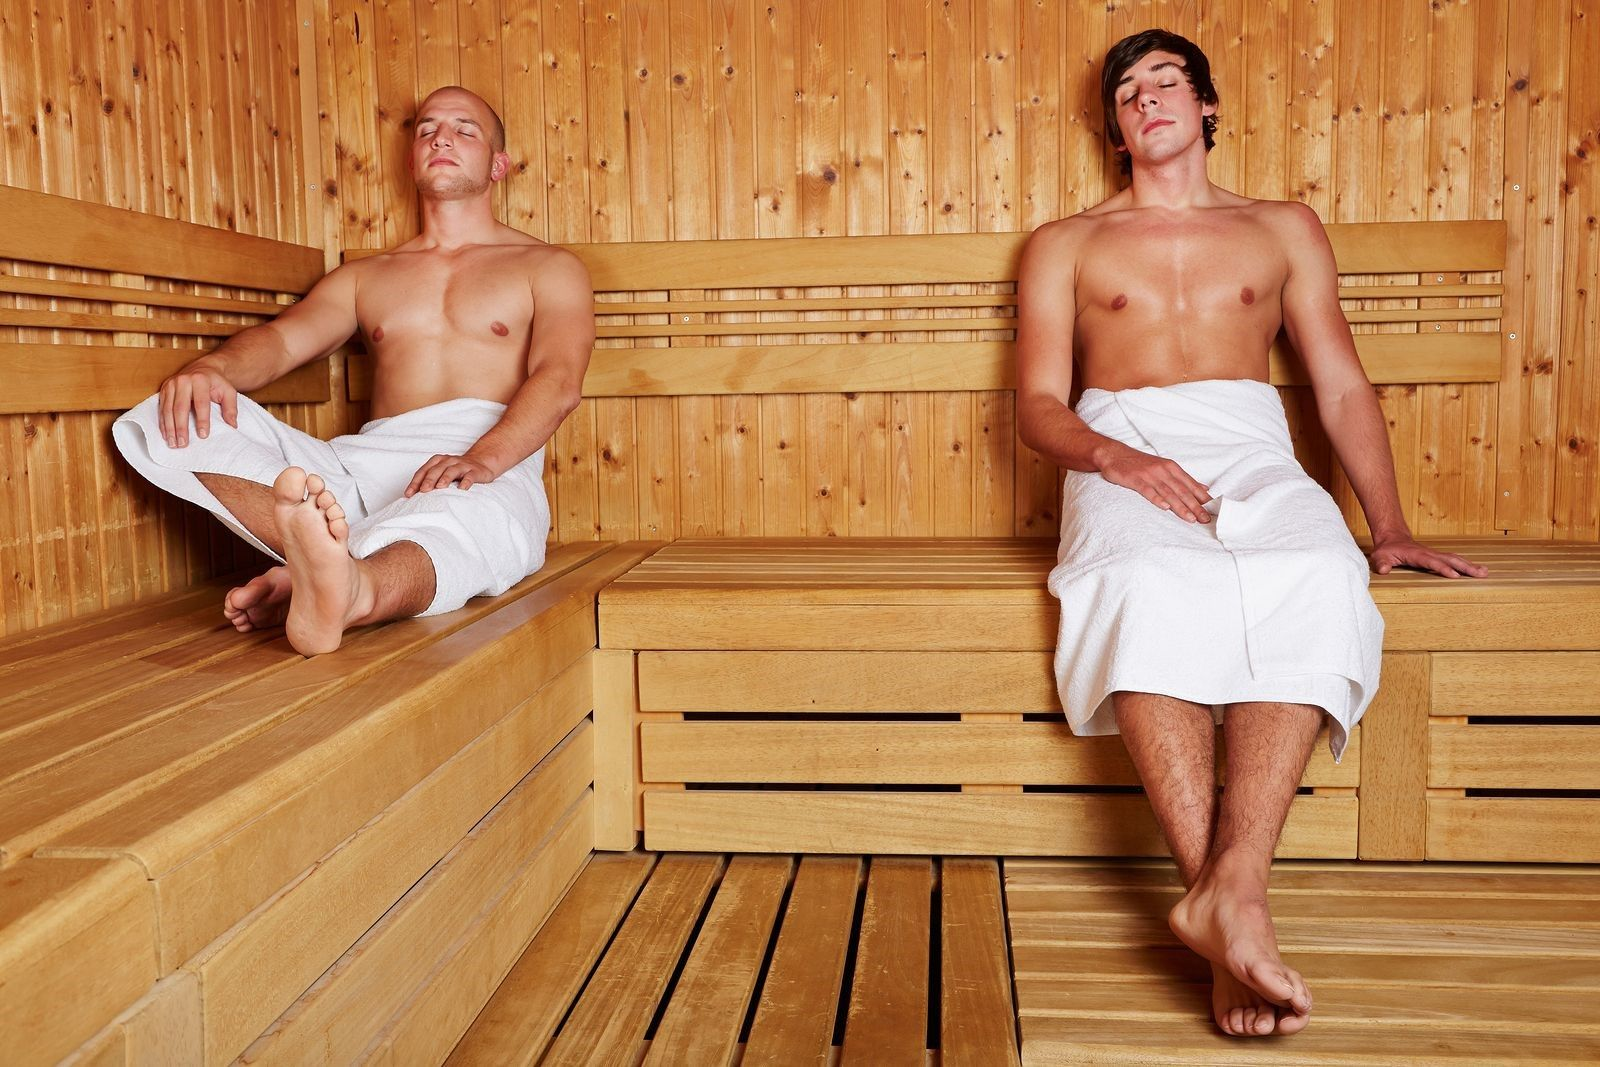 Tips for preparing your very own infrared home sauna jnh for Make your own sauna at home